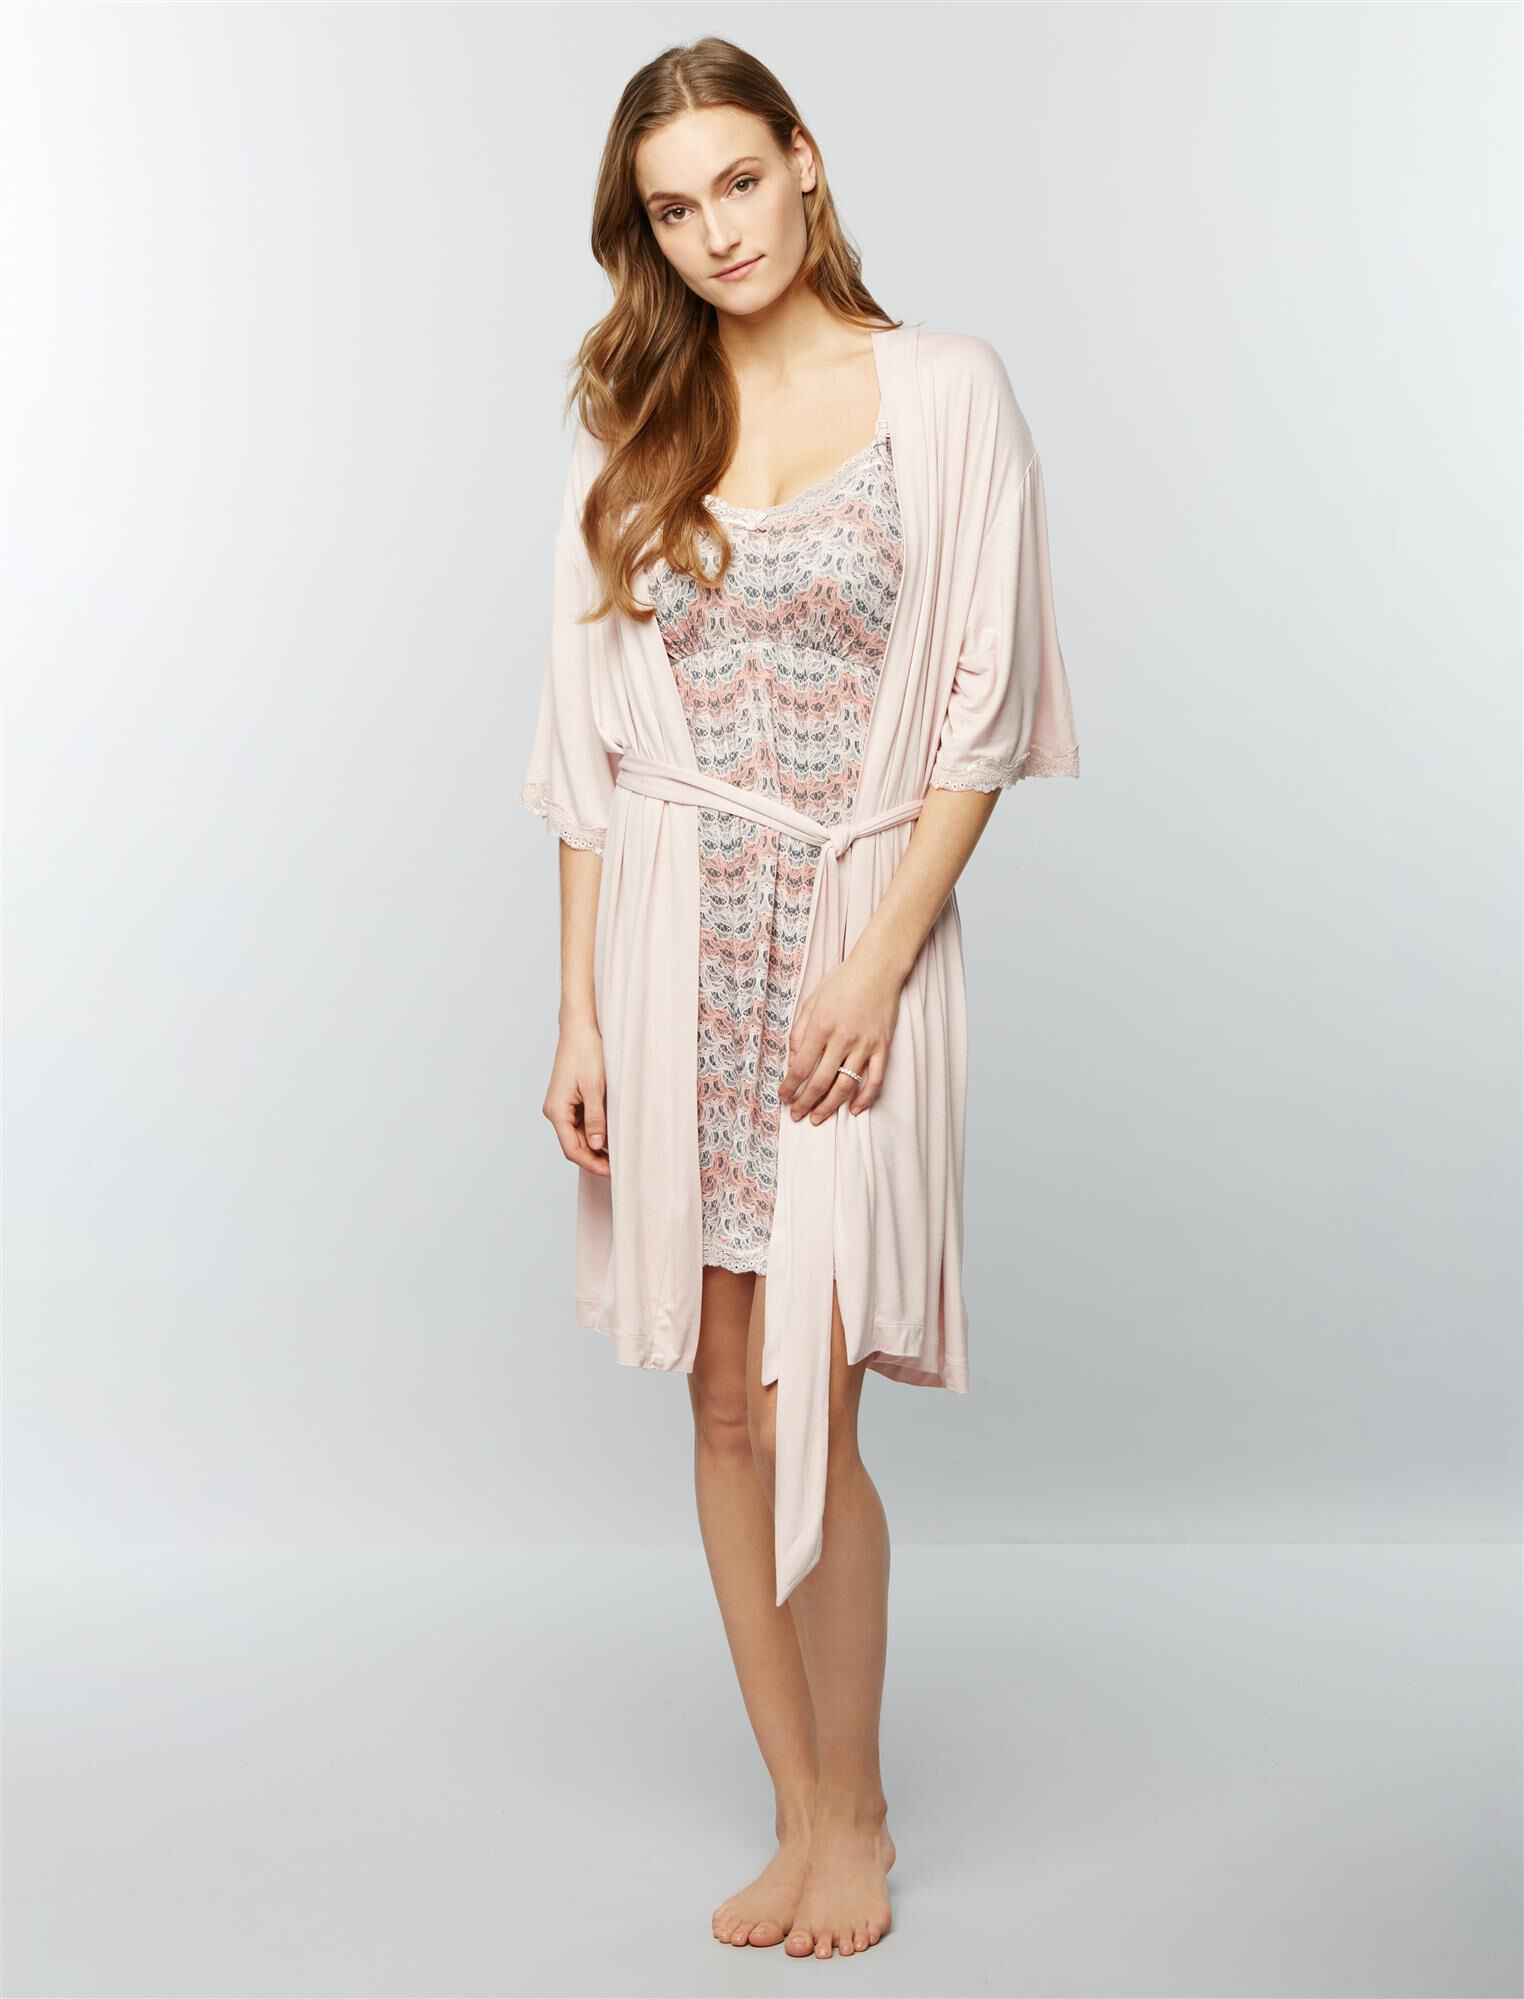 Clip Down Nursing Nightgown and Robe- Feather